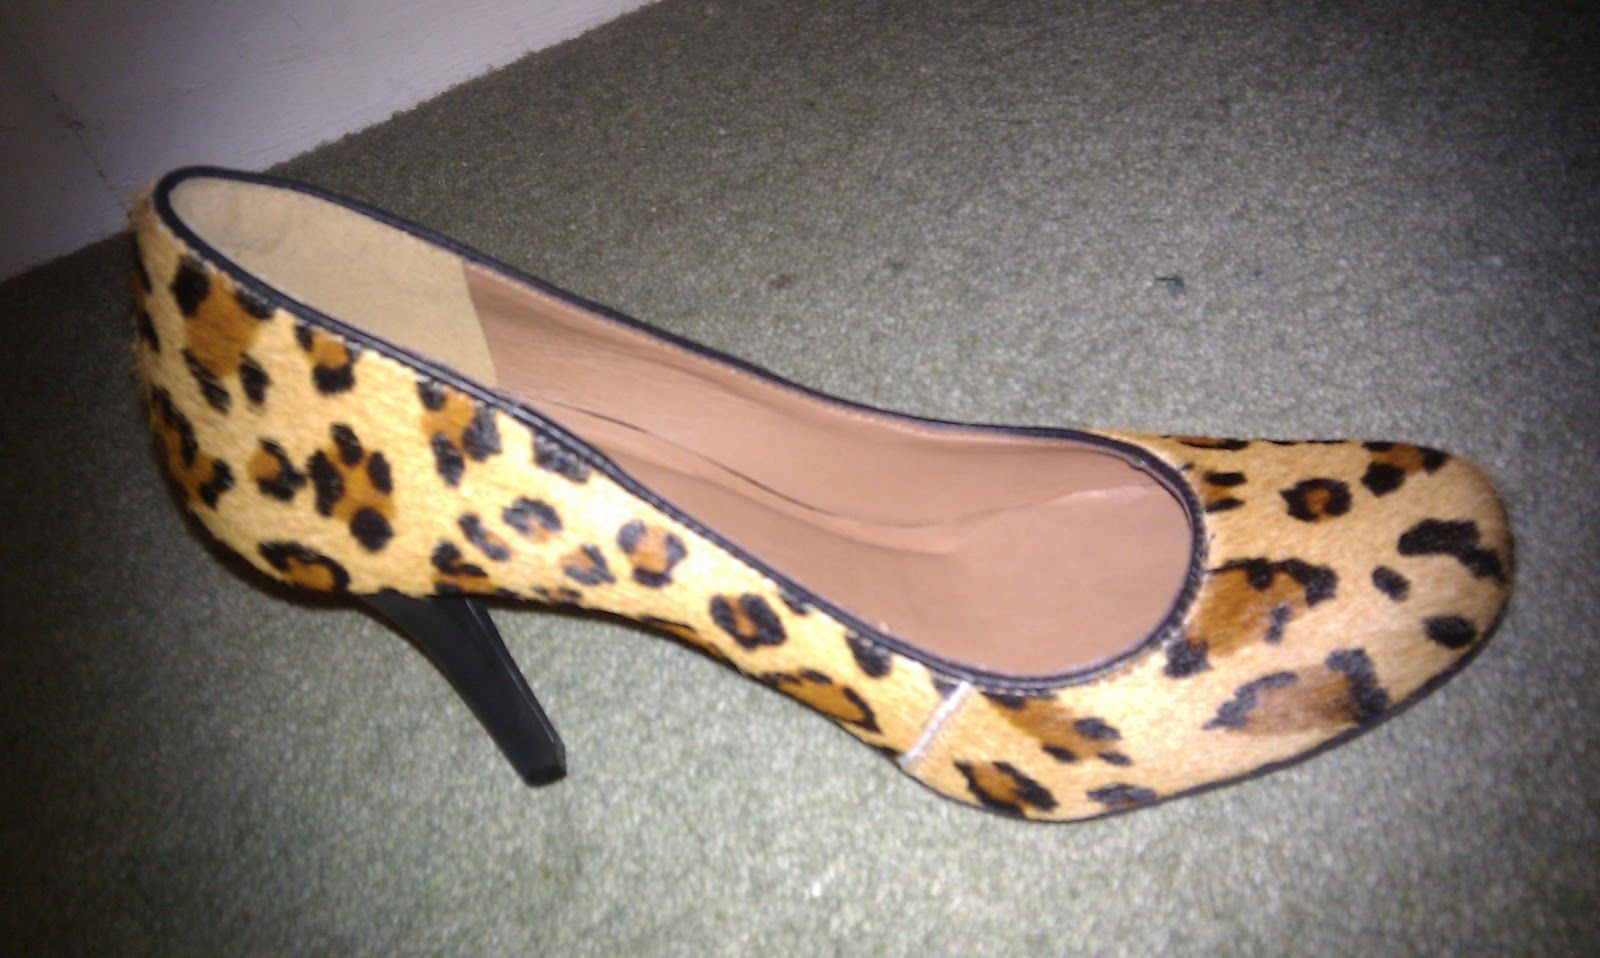 Tights And A Little Bit Of Animal Actually My Sisters Bargain Purchase Heels Tights Kitten Heels